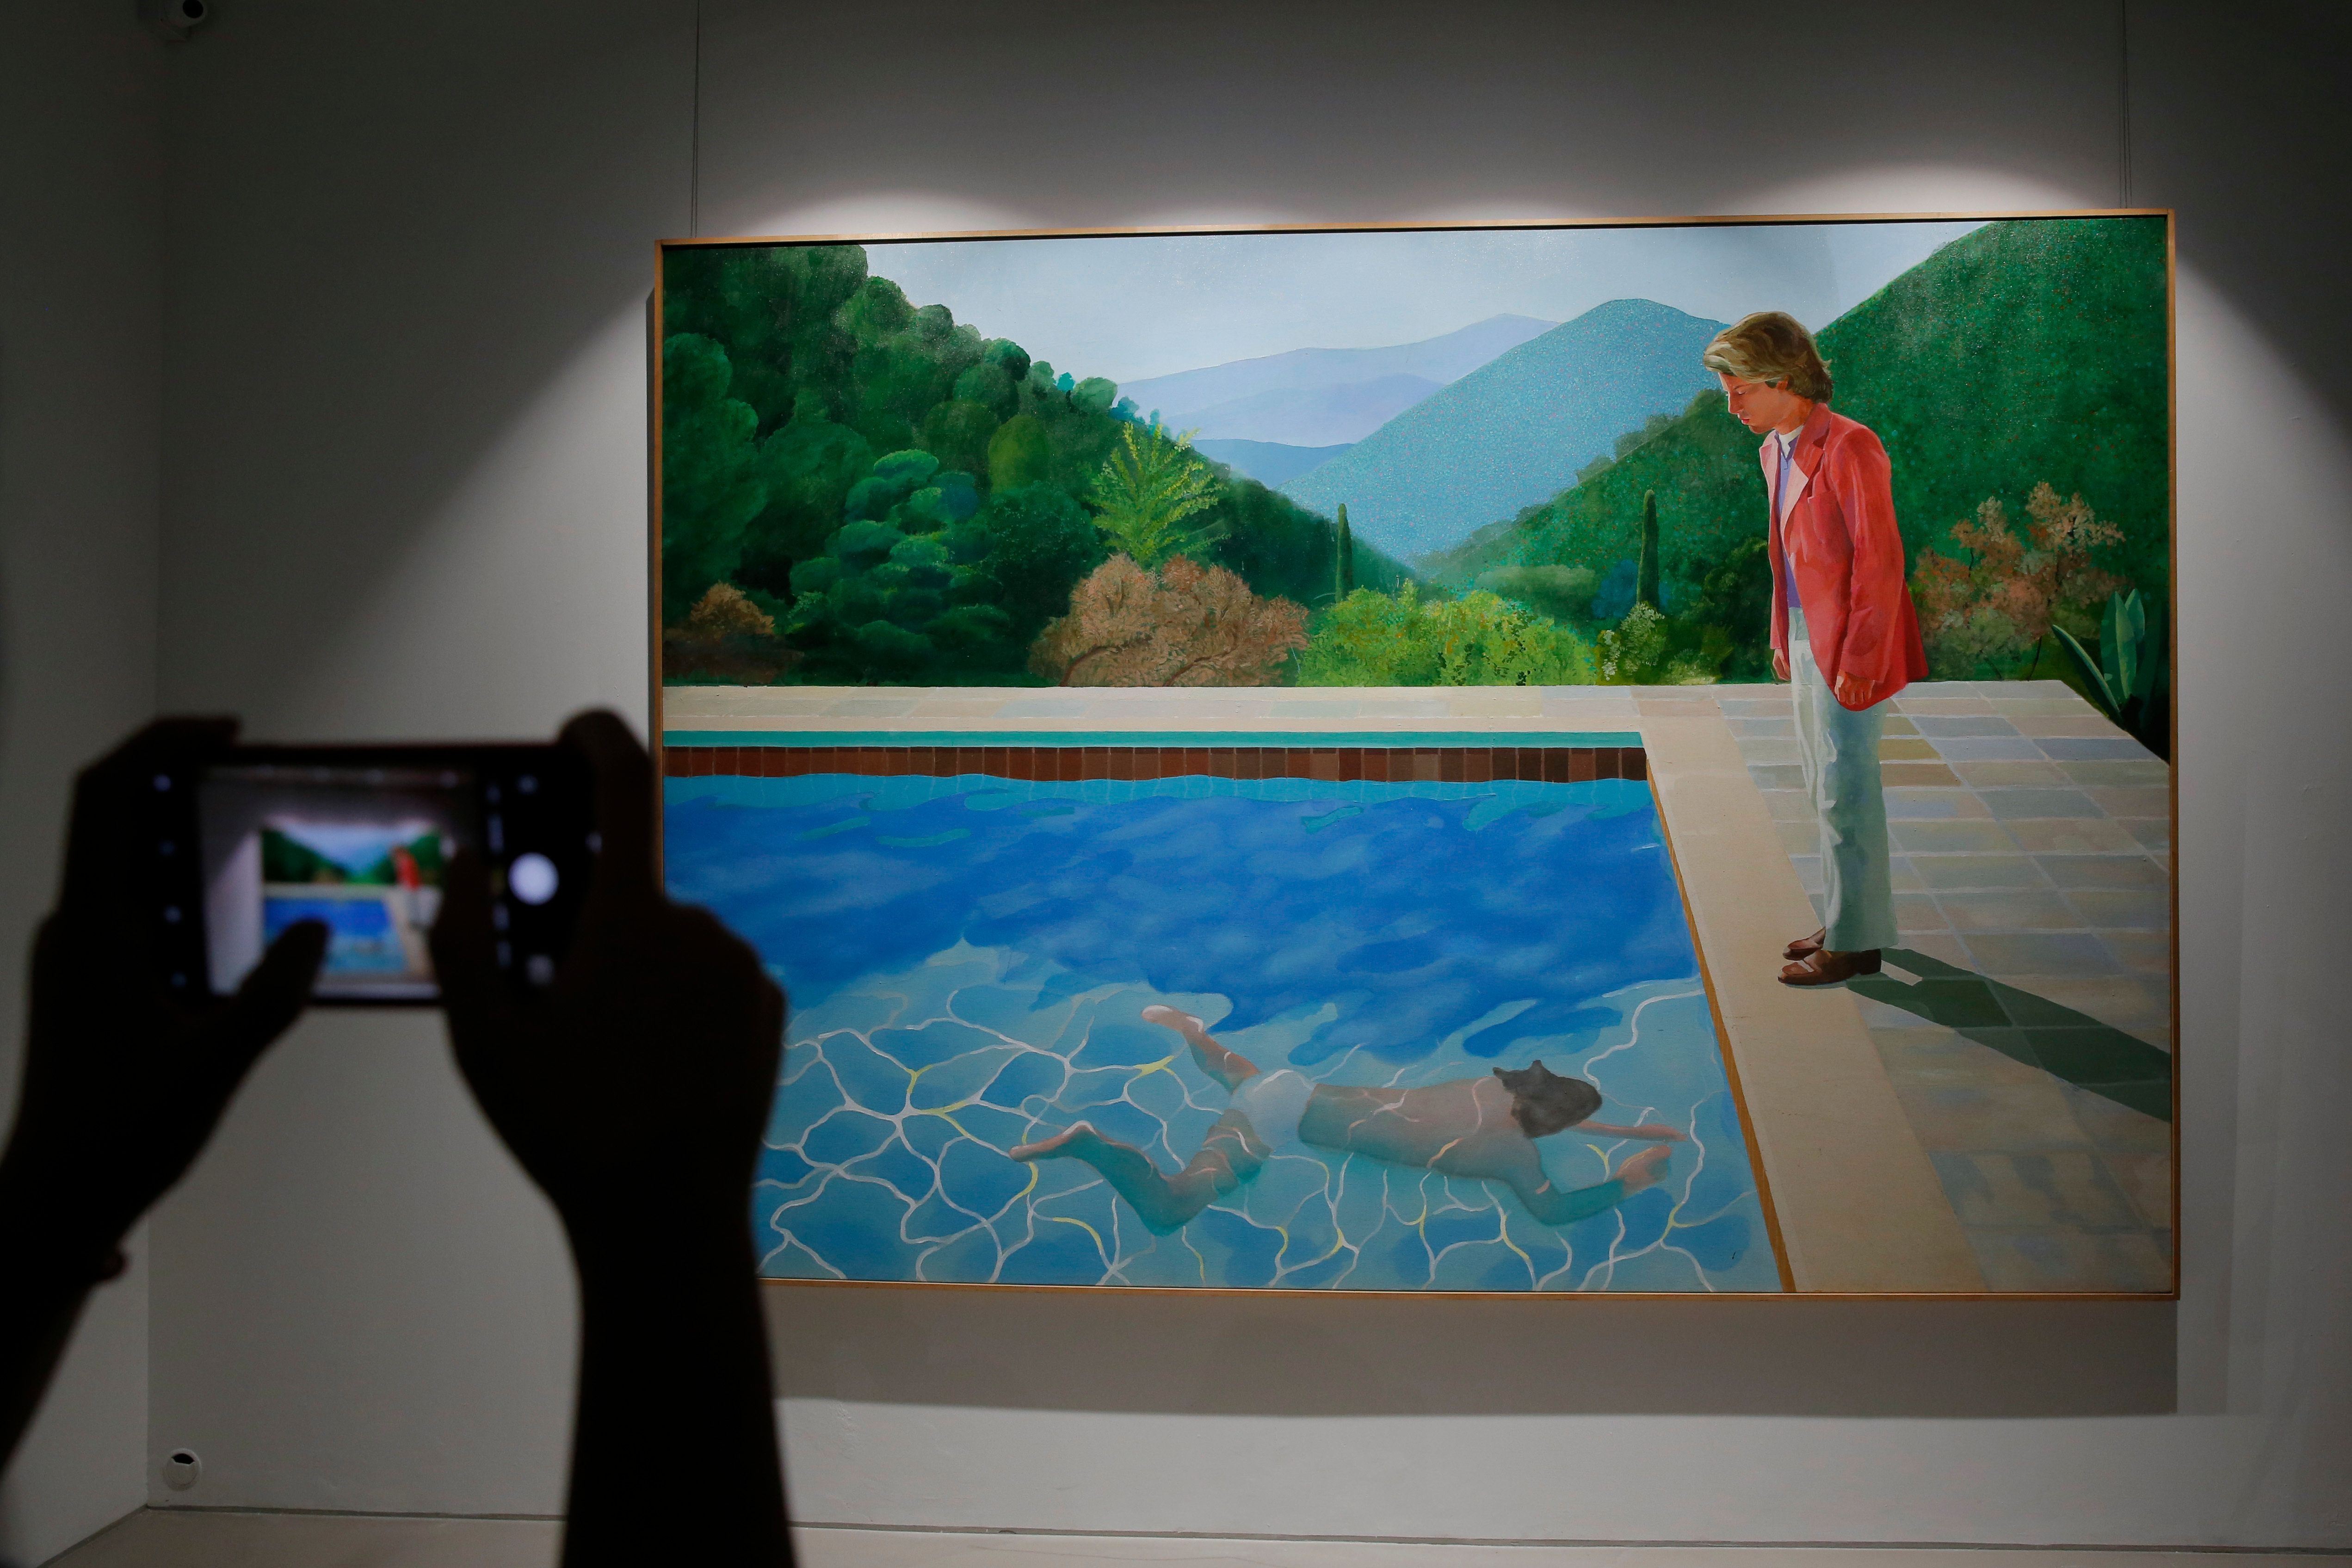 Un tableau de David Hockney vendu 90,3 millions de dollars